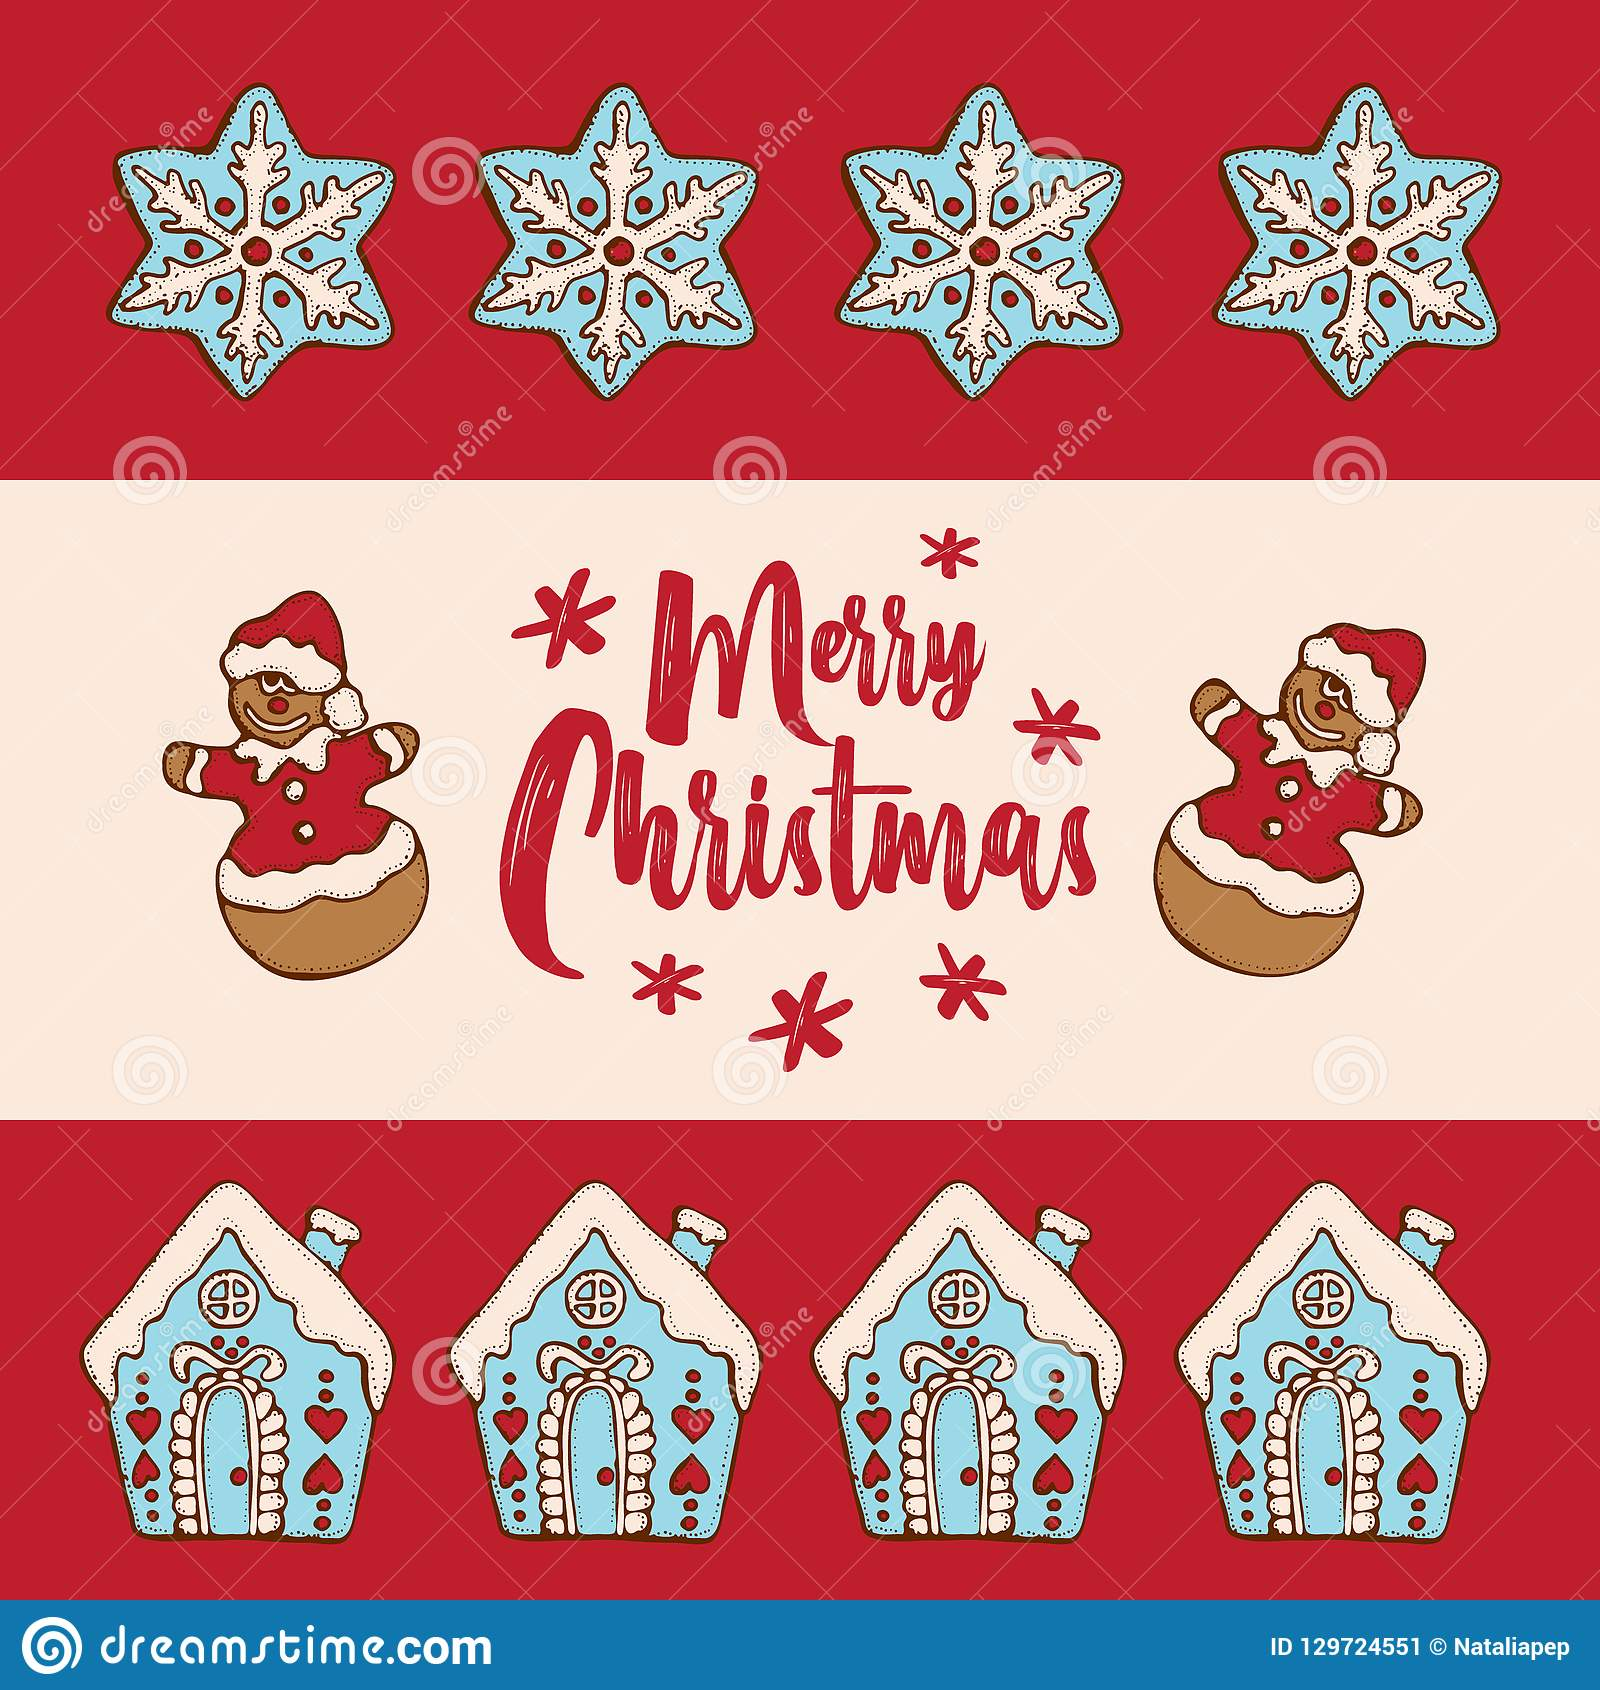 festive christmas and new year card invitation banner template vector illustration with christmas homemade gingerbread